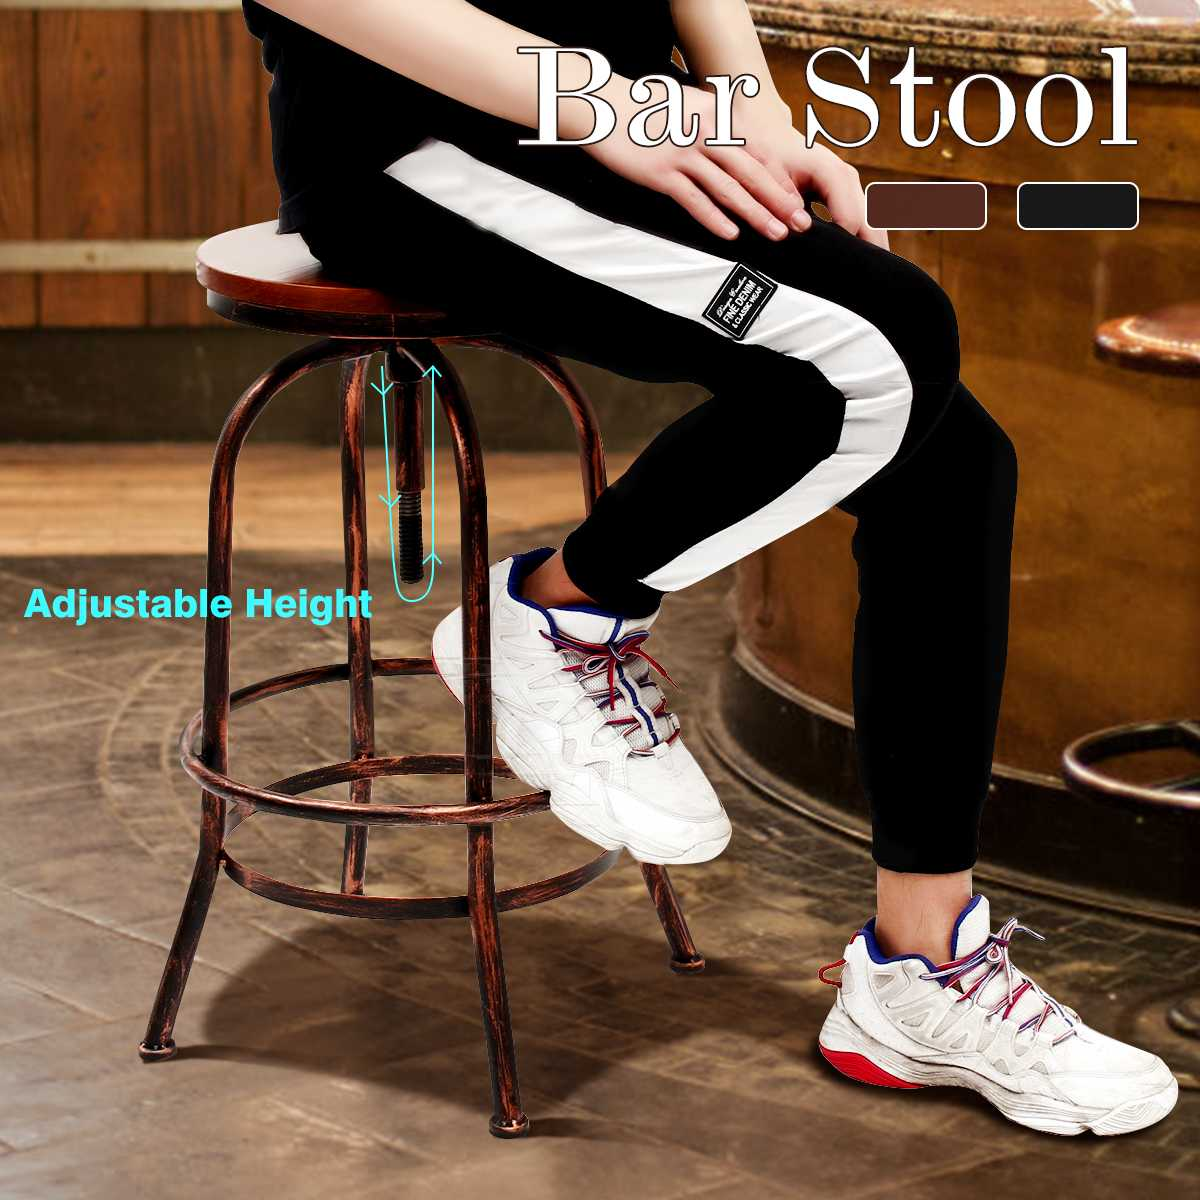 Vintage Bar Stool Industrial Modern Retro Solid Wood Seat Bar Chair Adjustable Height High Stool Kitchen Dining Chair Decoration